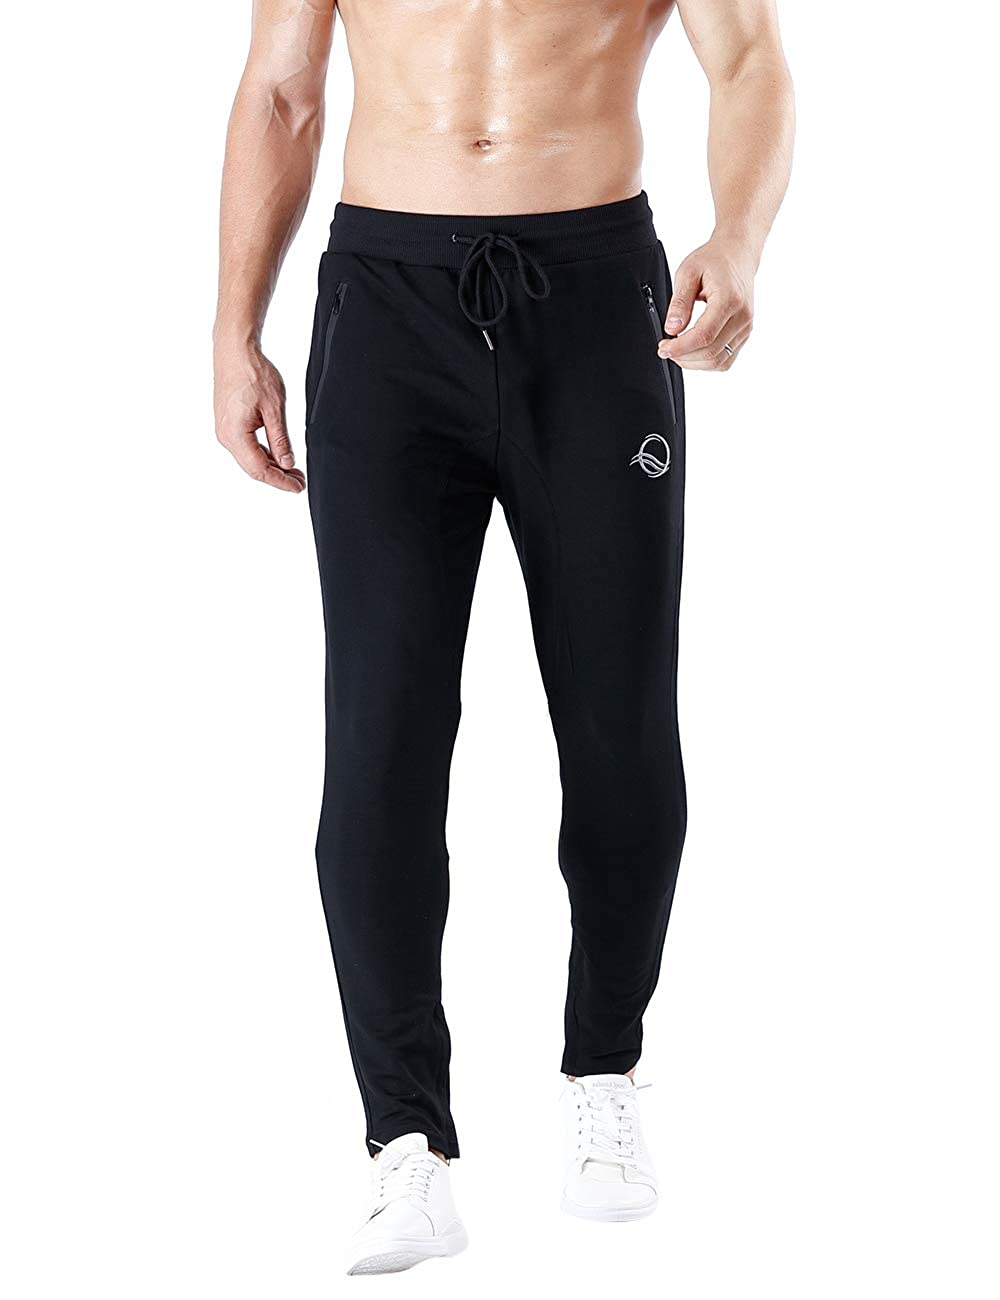 QRANSS Mens Athletic Pants Soccer Training Track Pants Trousers